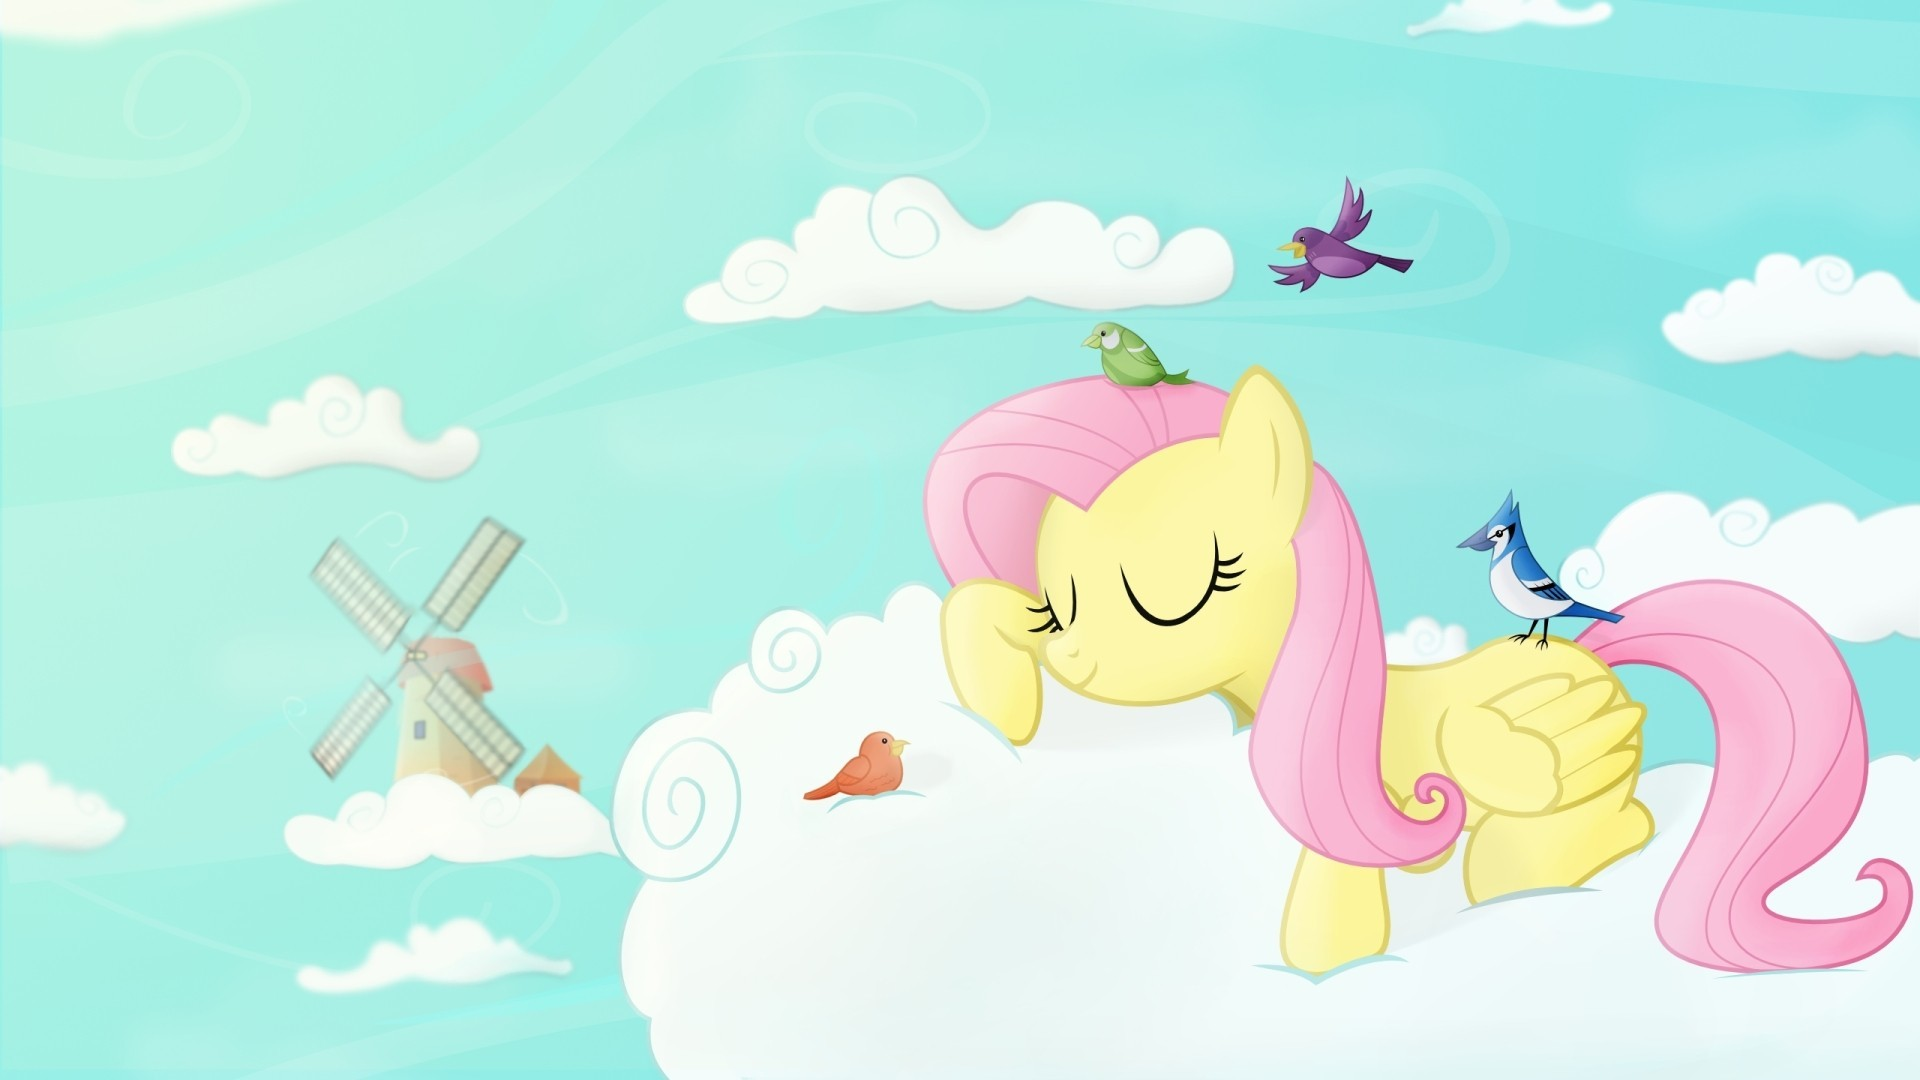 1920x1080 Clouds sleeping Fluttershy ponies My Little Pony: Friendship is Magic  wallpaper |  | 73468 | WallpaperUP